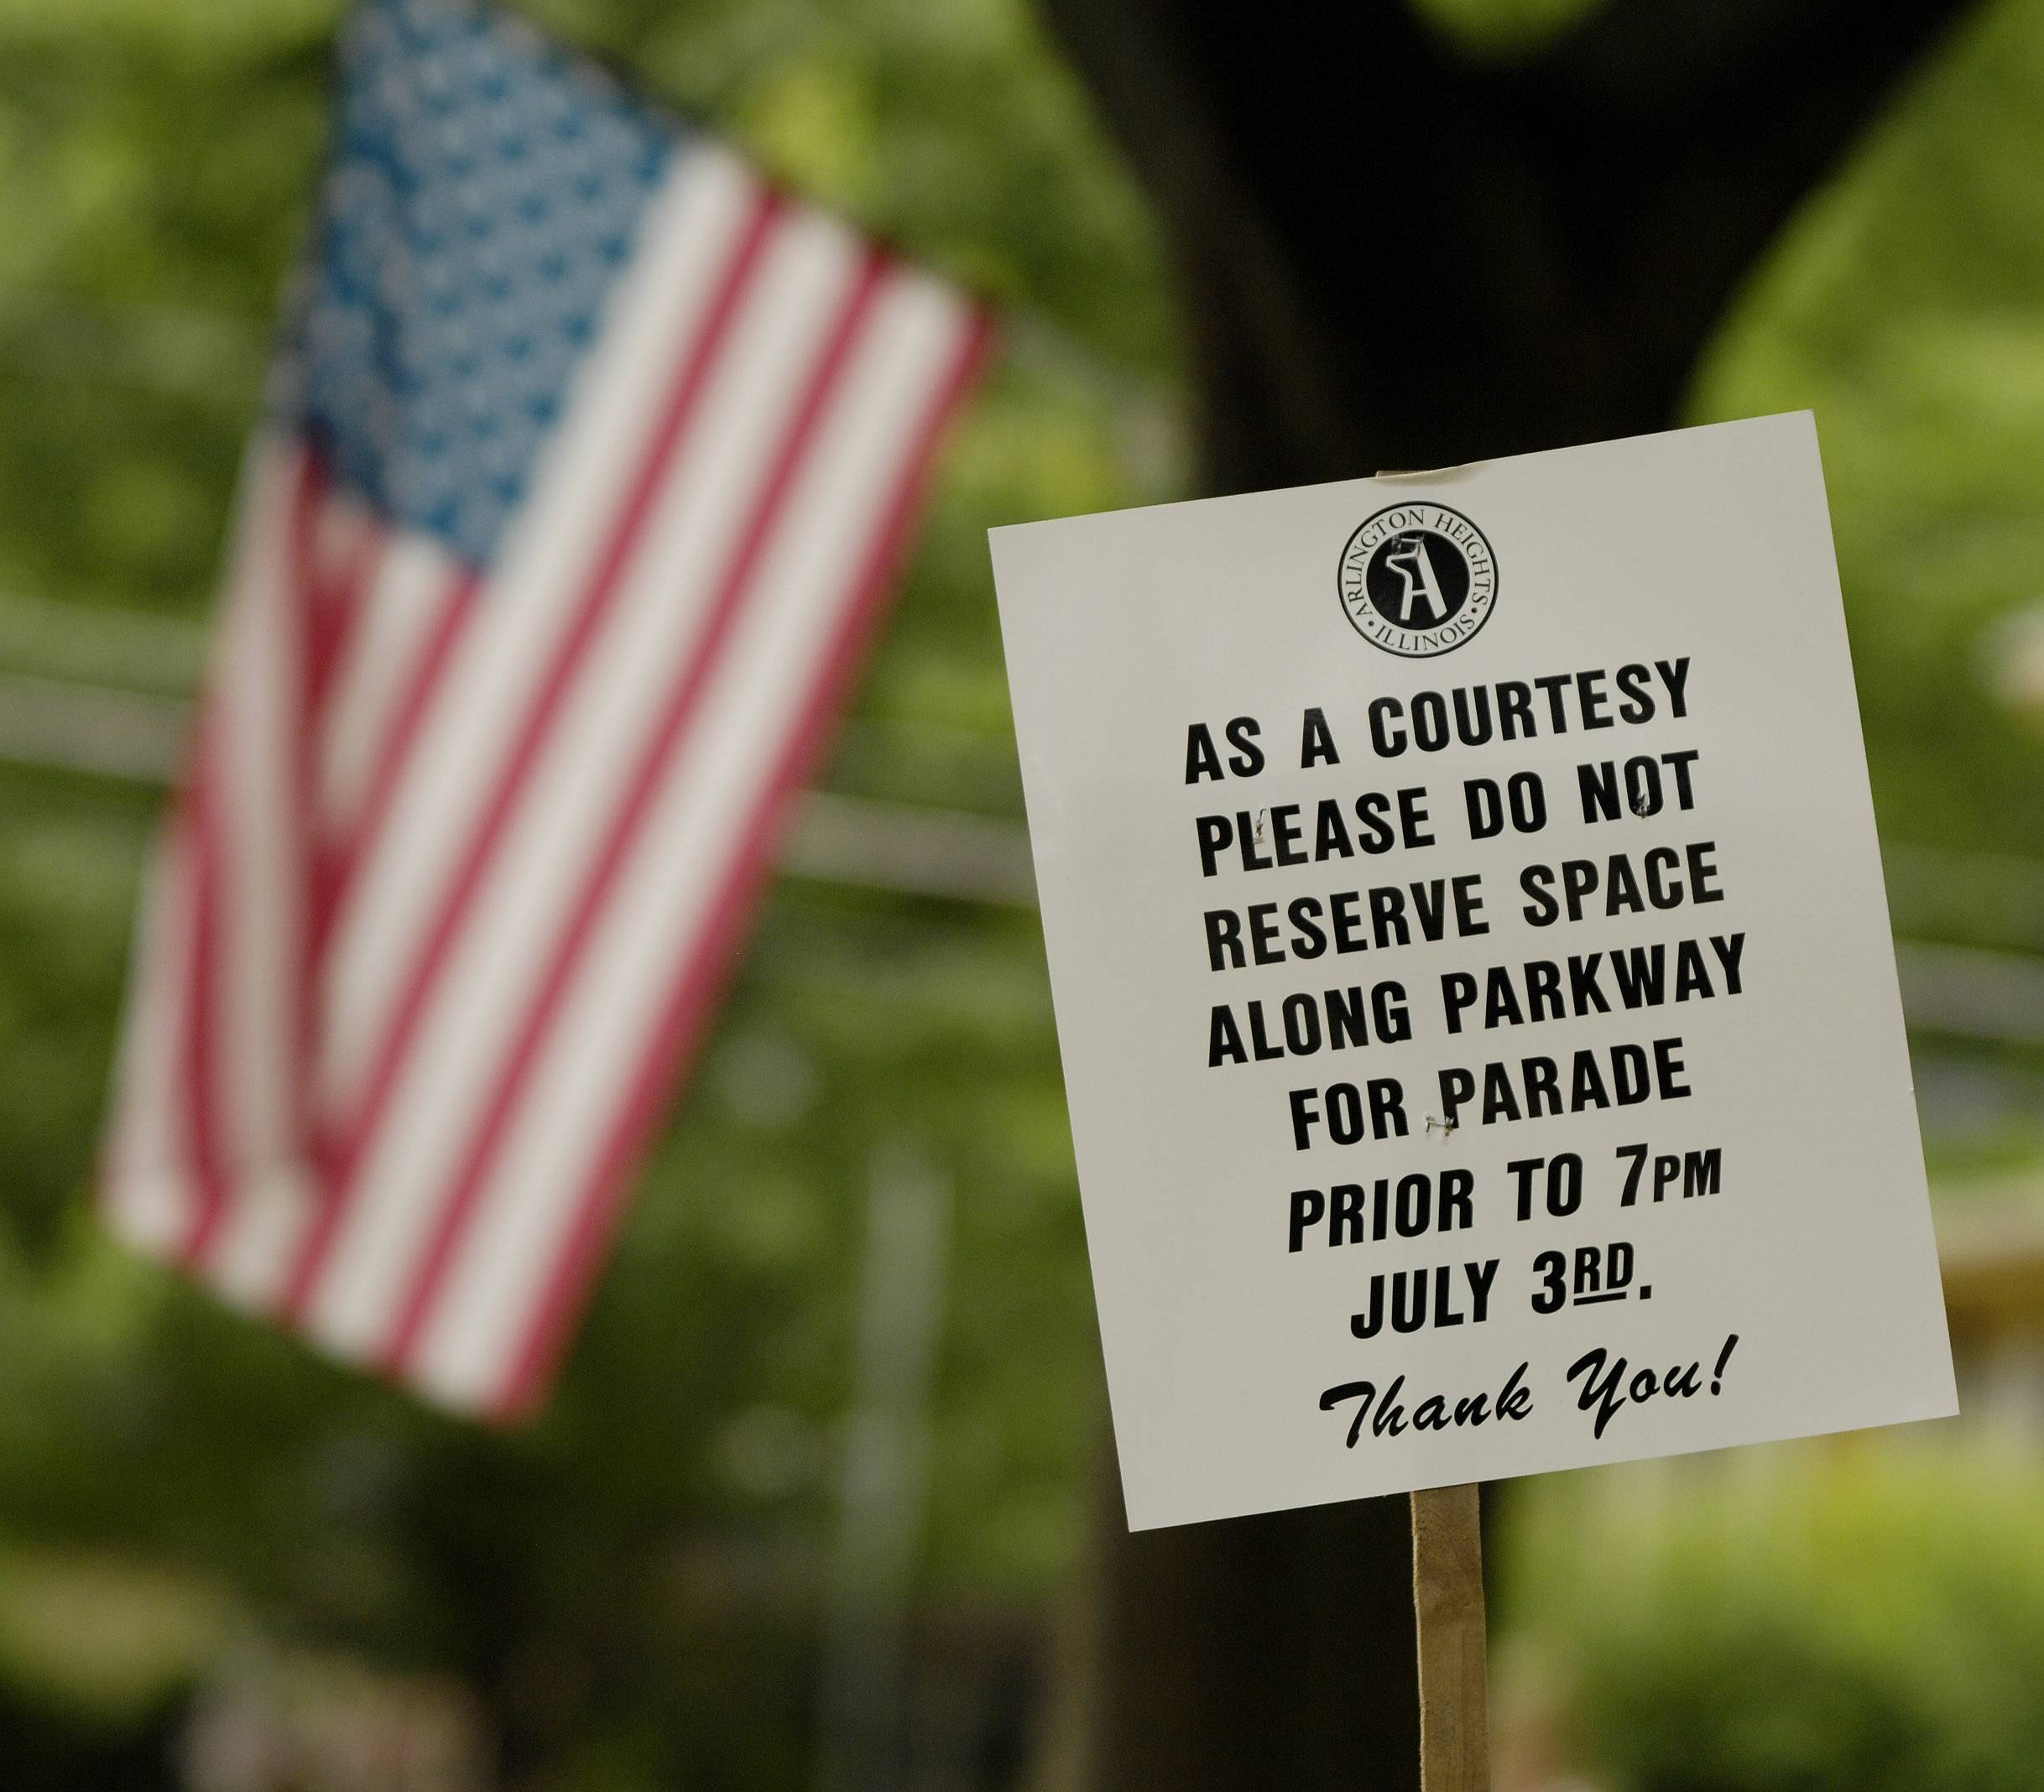 Signs posted along Dunton Avenue in Arlington Heights warn Fourth of July paradegoers not to reserve spaces along the parkway prior to 7 p.m. July 3rd.